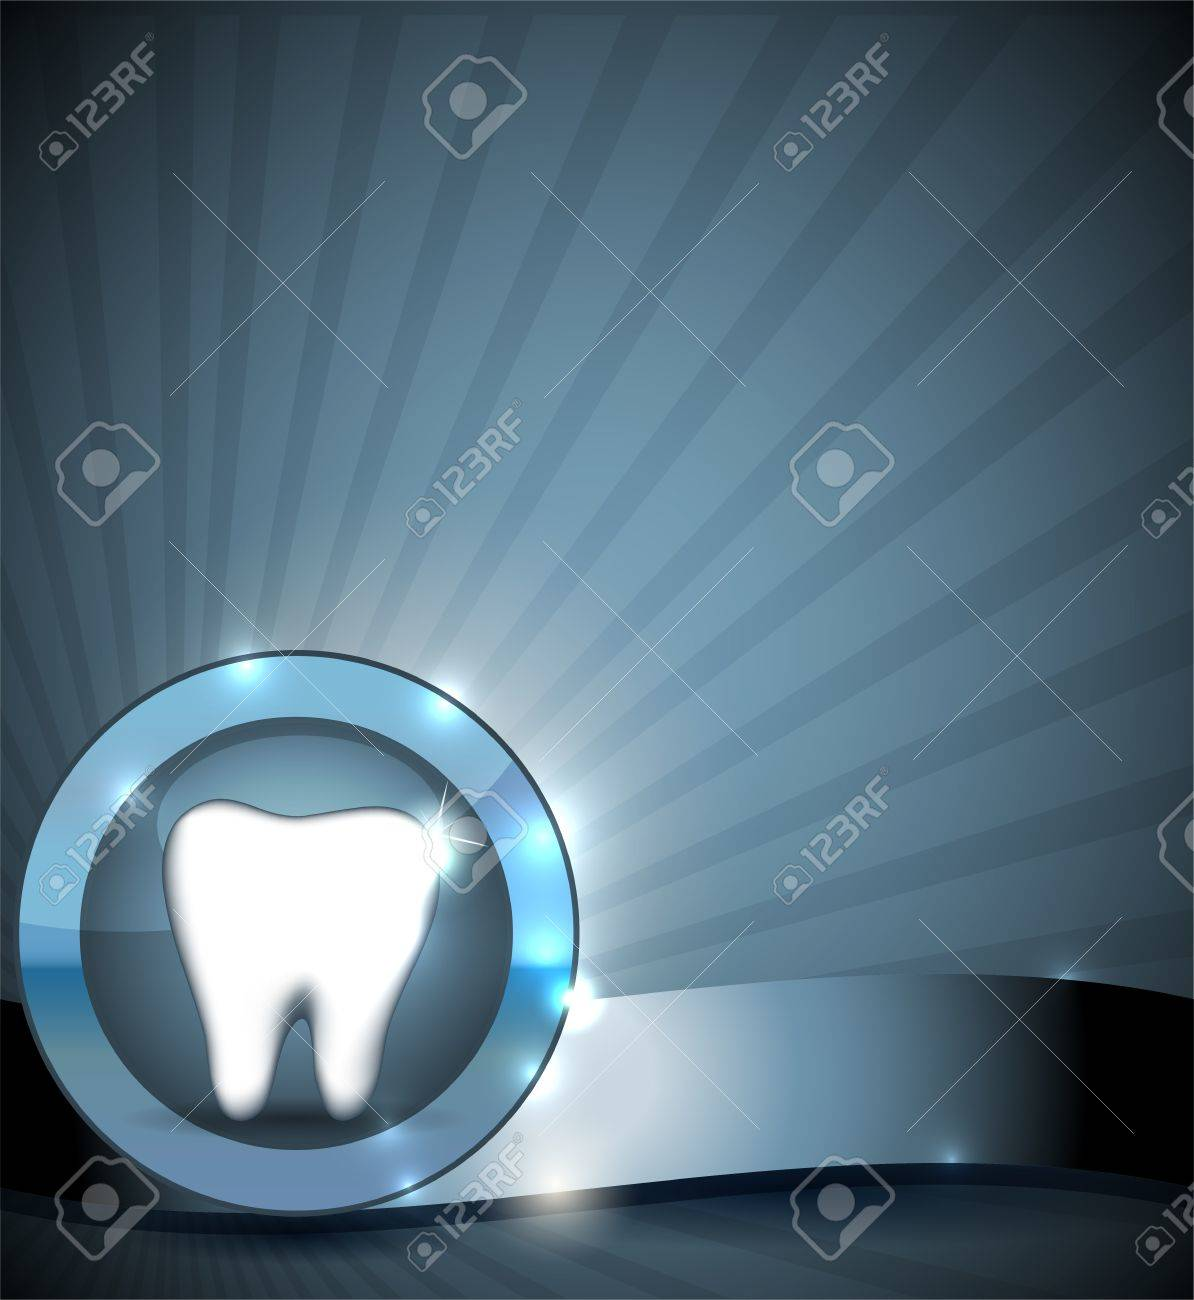 Dental sign, brochure design  Healthy tooth in round circle  Clean and bright design Stock Vector - 21953257